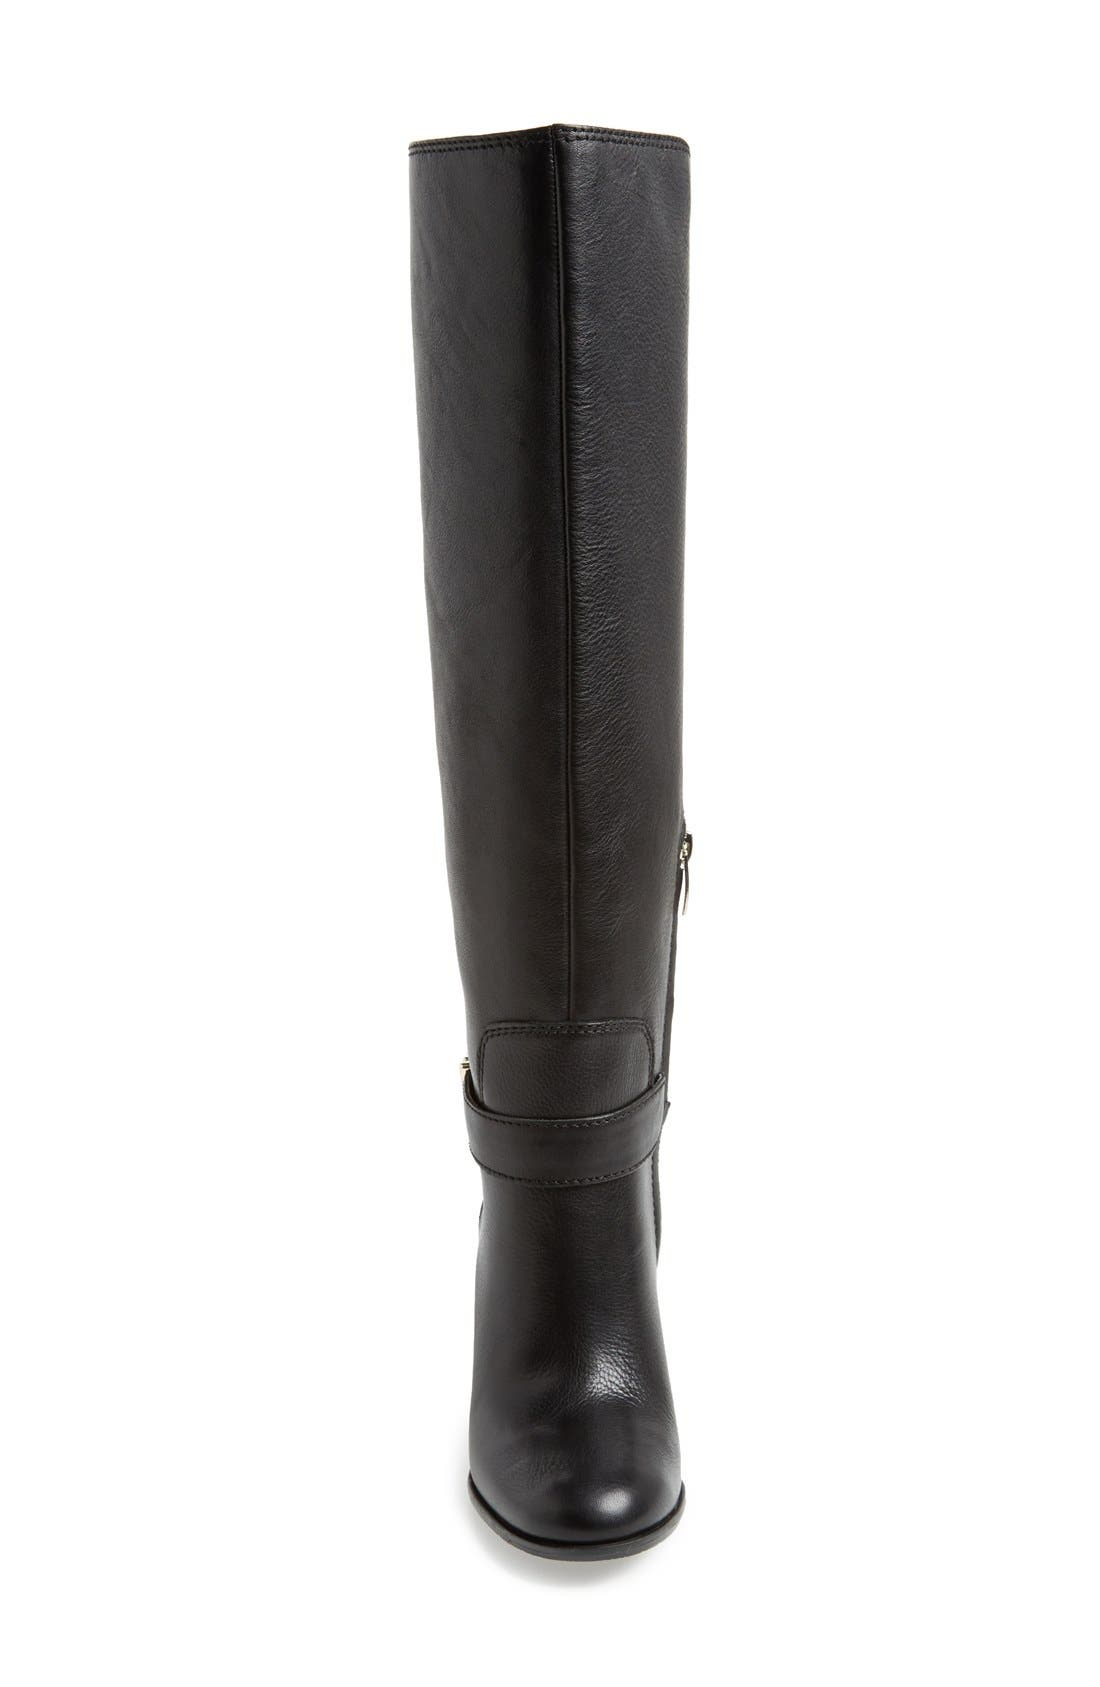 Alternate Image 3  - Enzo Angiolini 'Sumilo' Boot (Wide Calf) (Women)